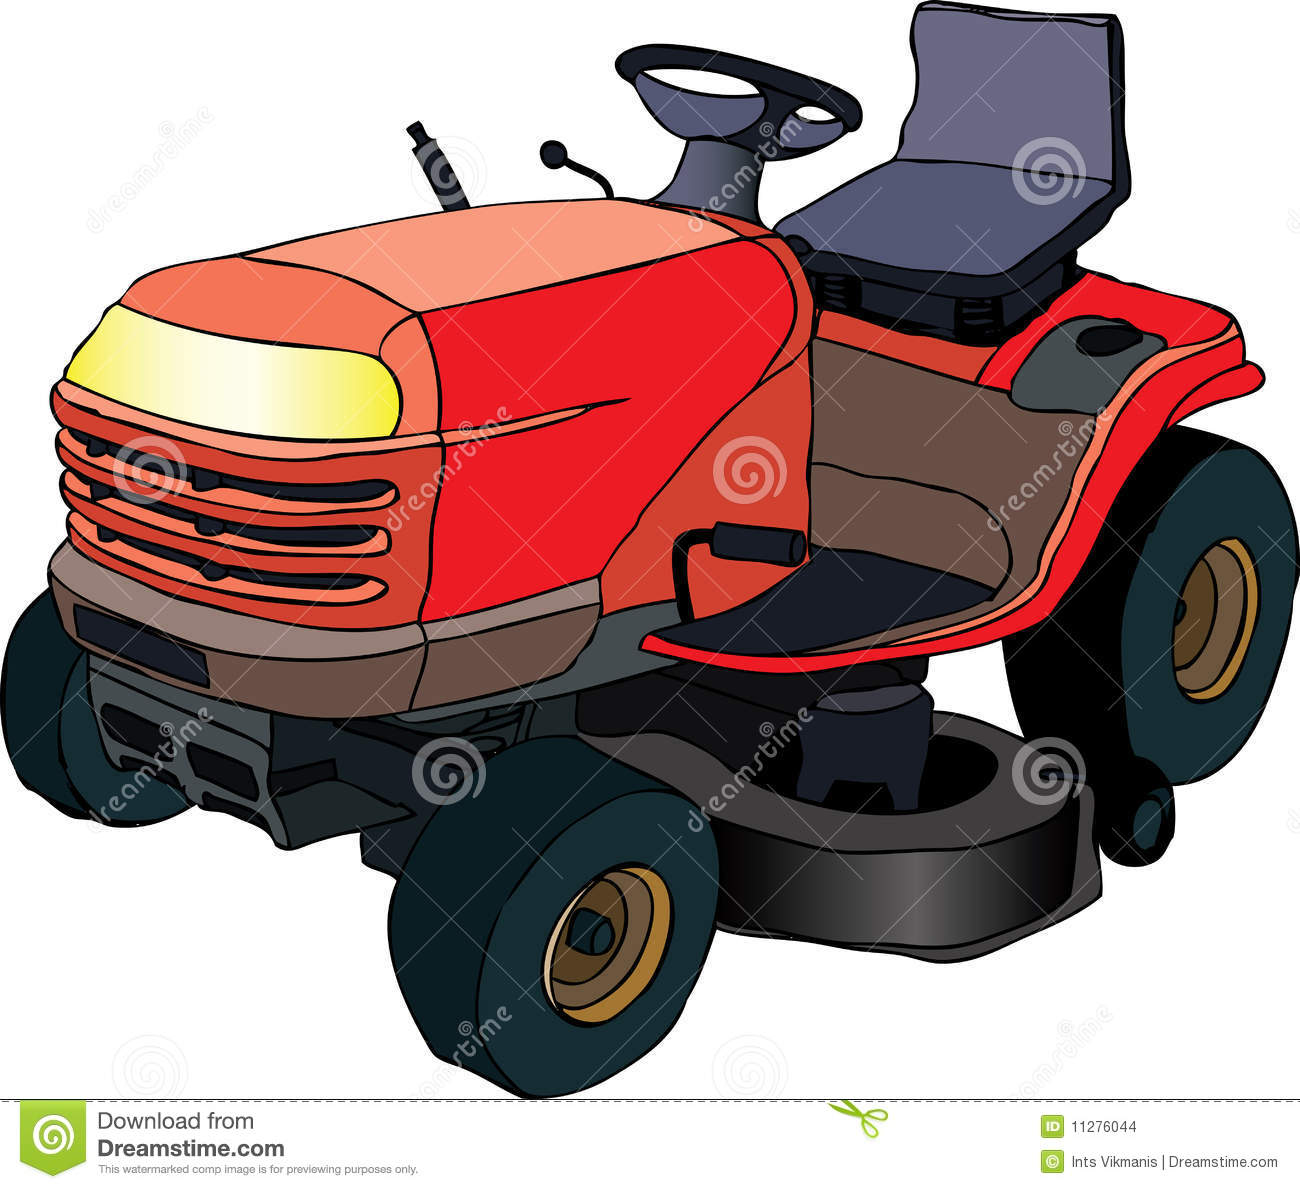 Lawn mower tractor stock vector illustration of technology 11276044 lawn mower tractor publicscrutiny Image collections